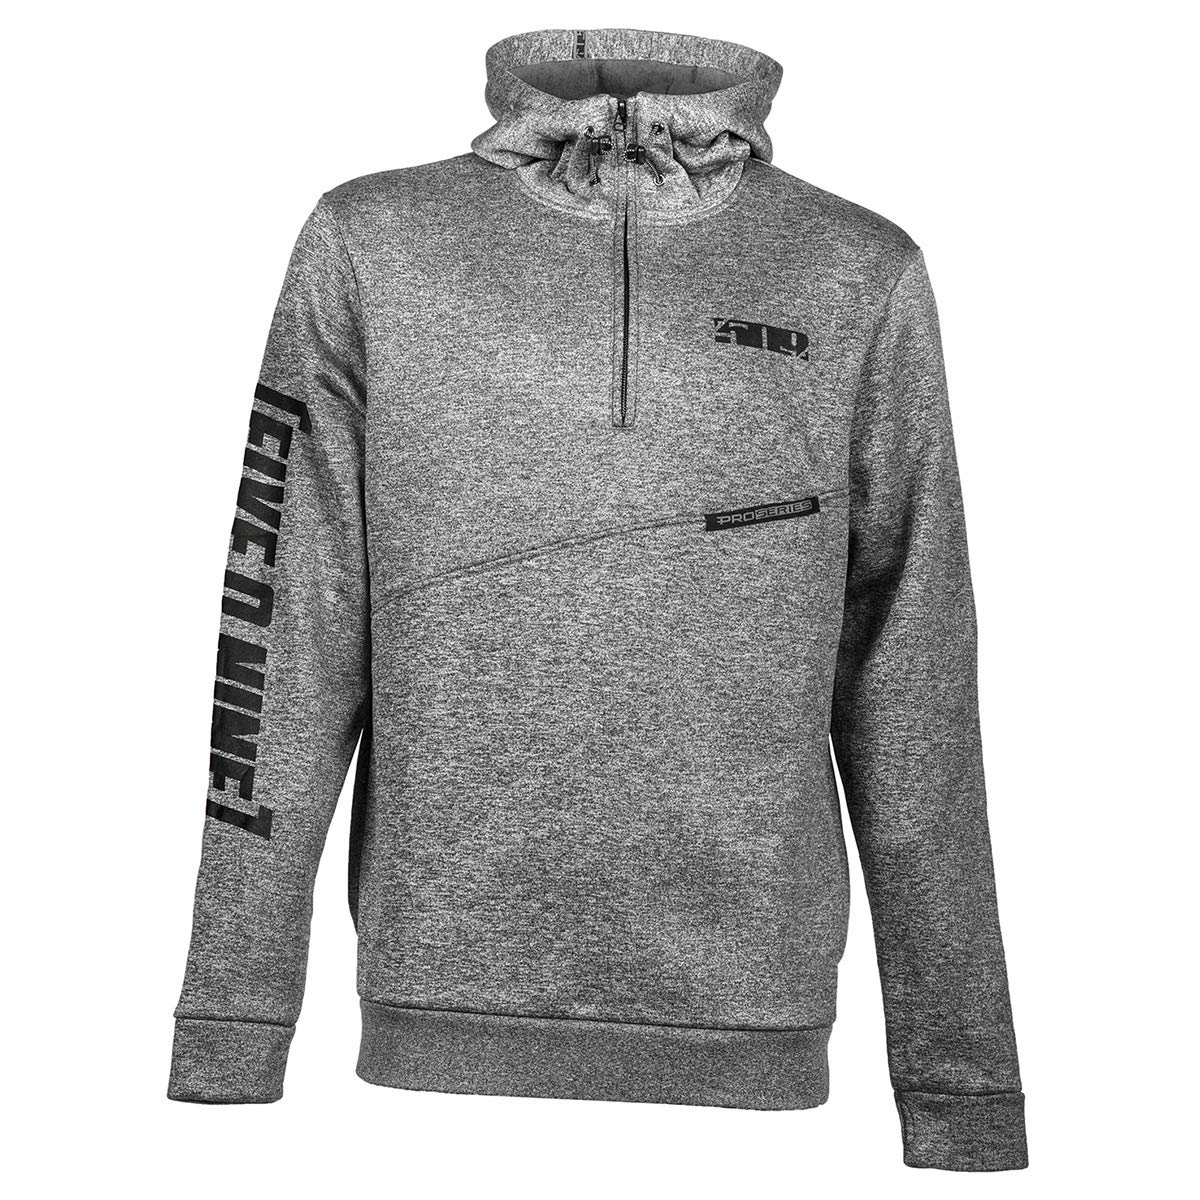 509 Sector Quarter-Zip Hoody (Gray - Small) F09000800-120-601